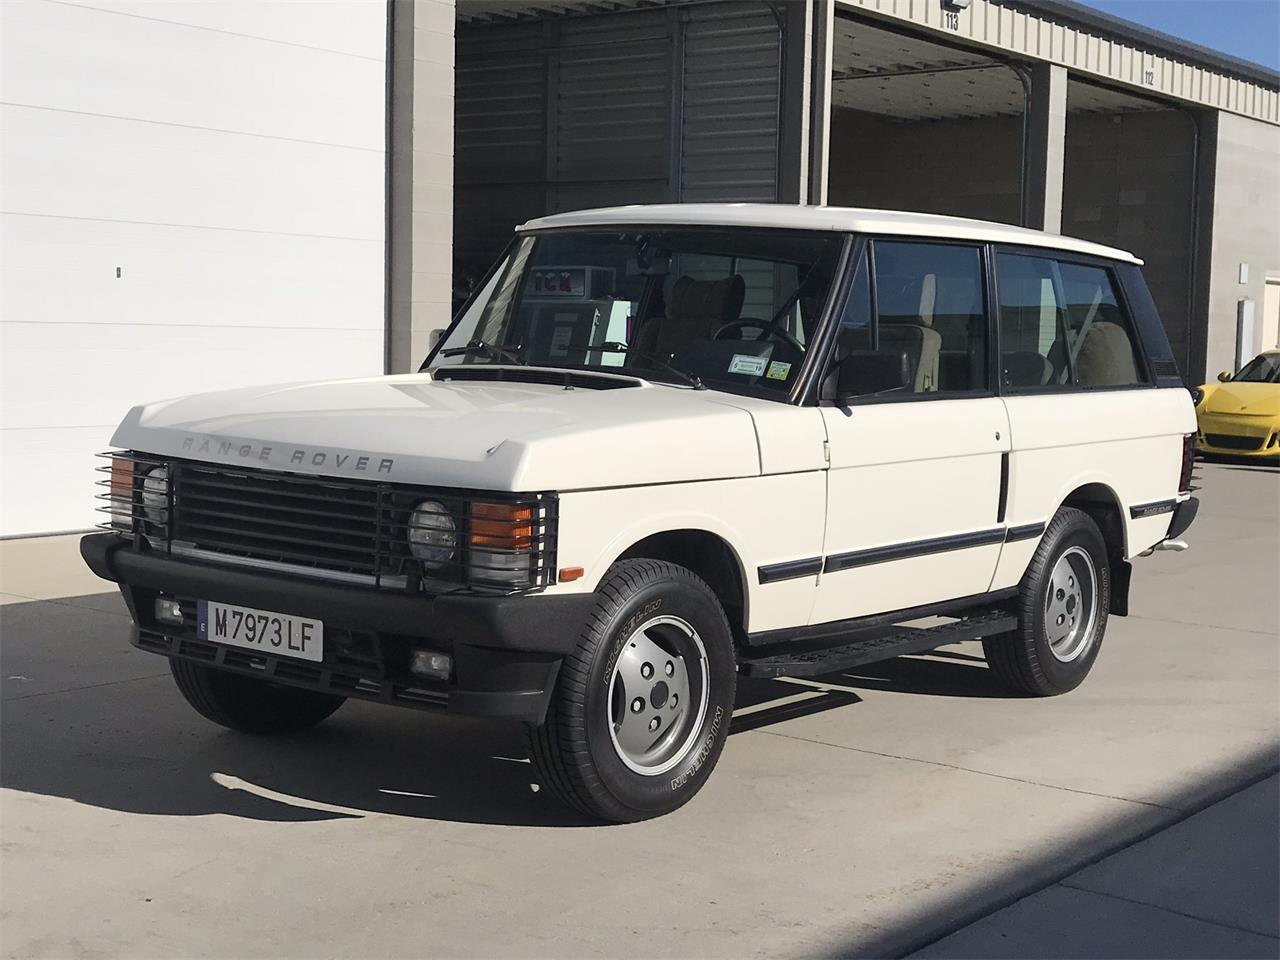 1990 Land Rover Range Rover for sale in Boise, ID – photo 21